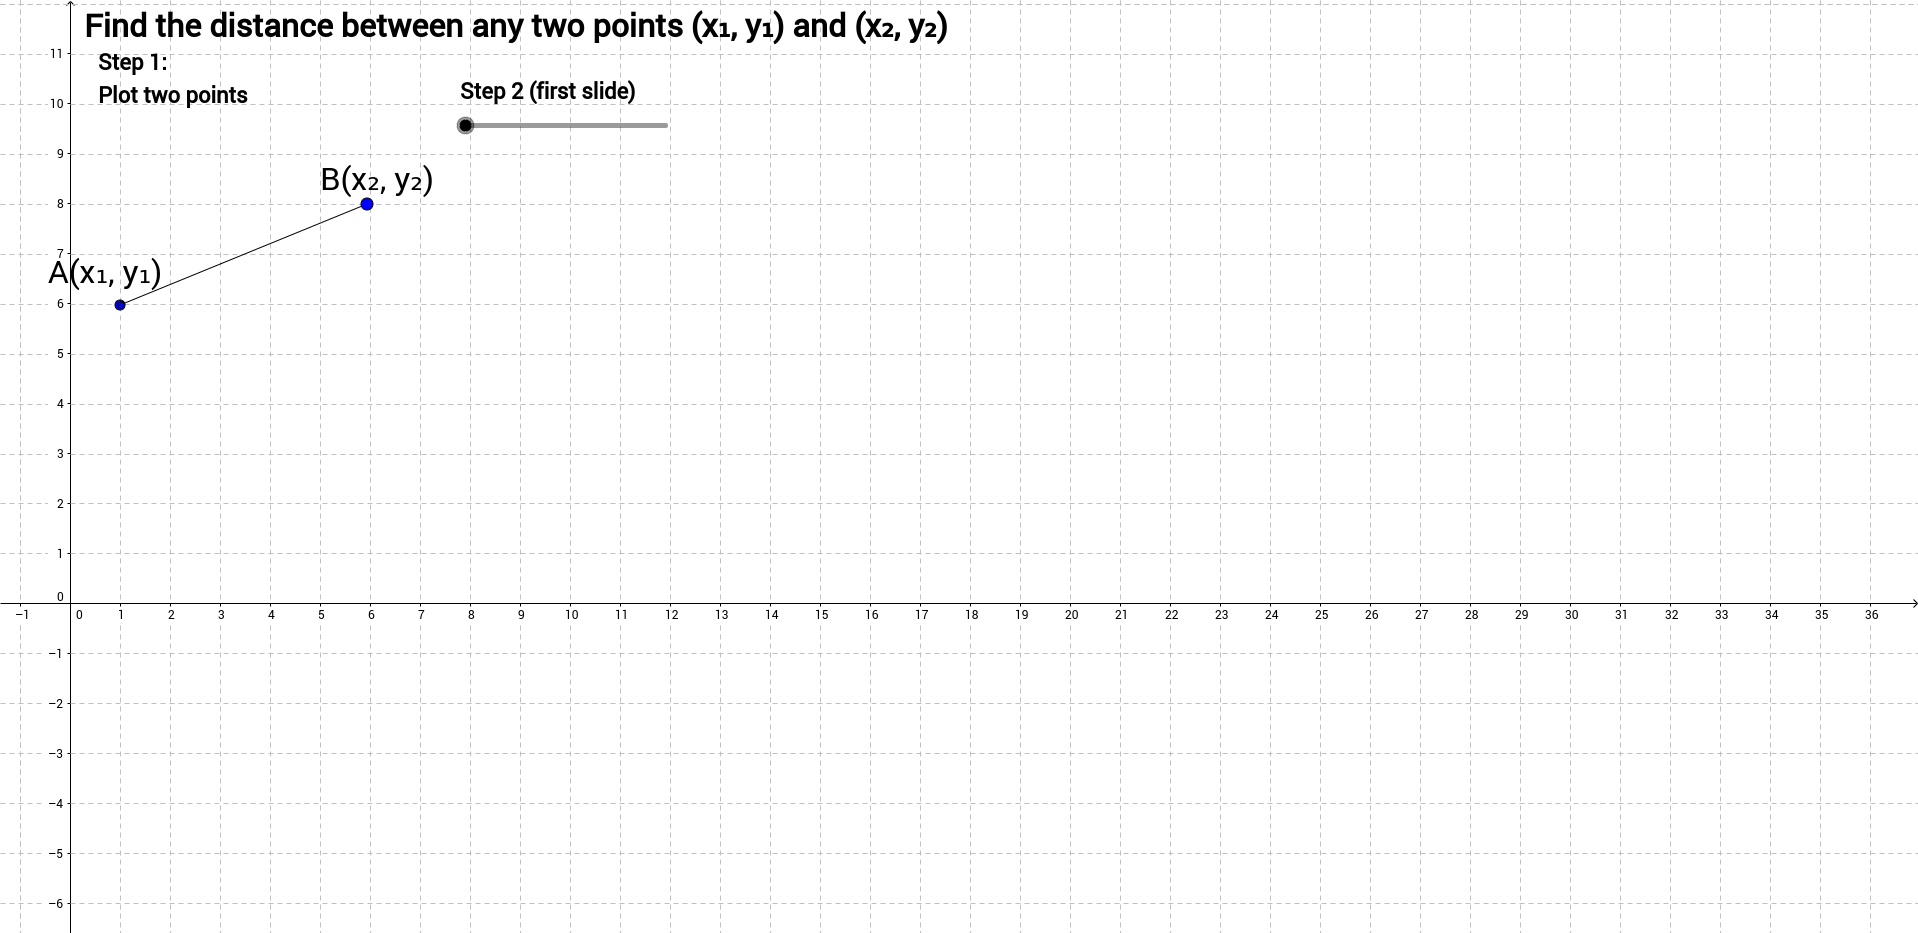 Deriving the distance formula from the Pythagorean Theorem